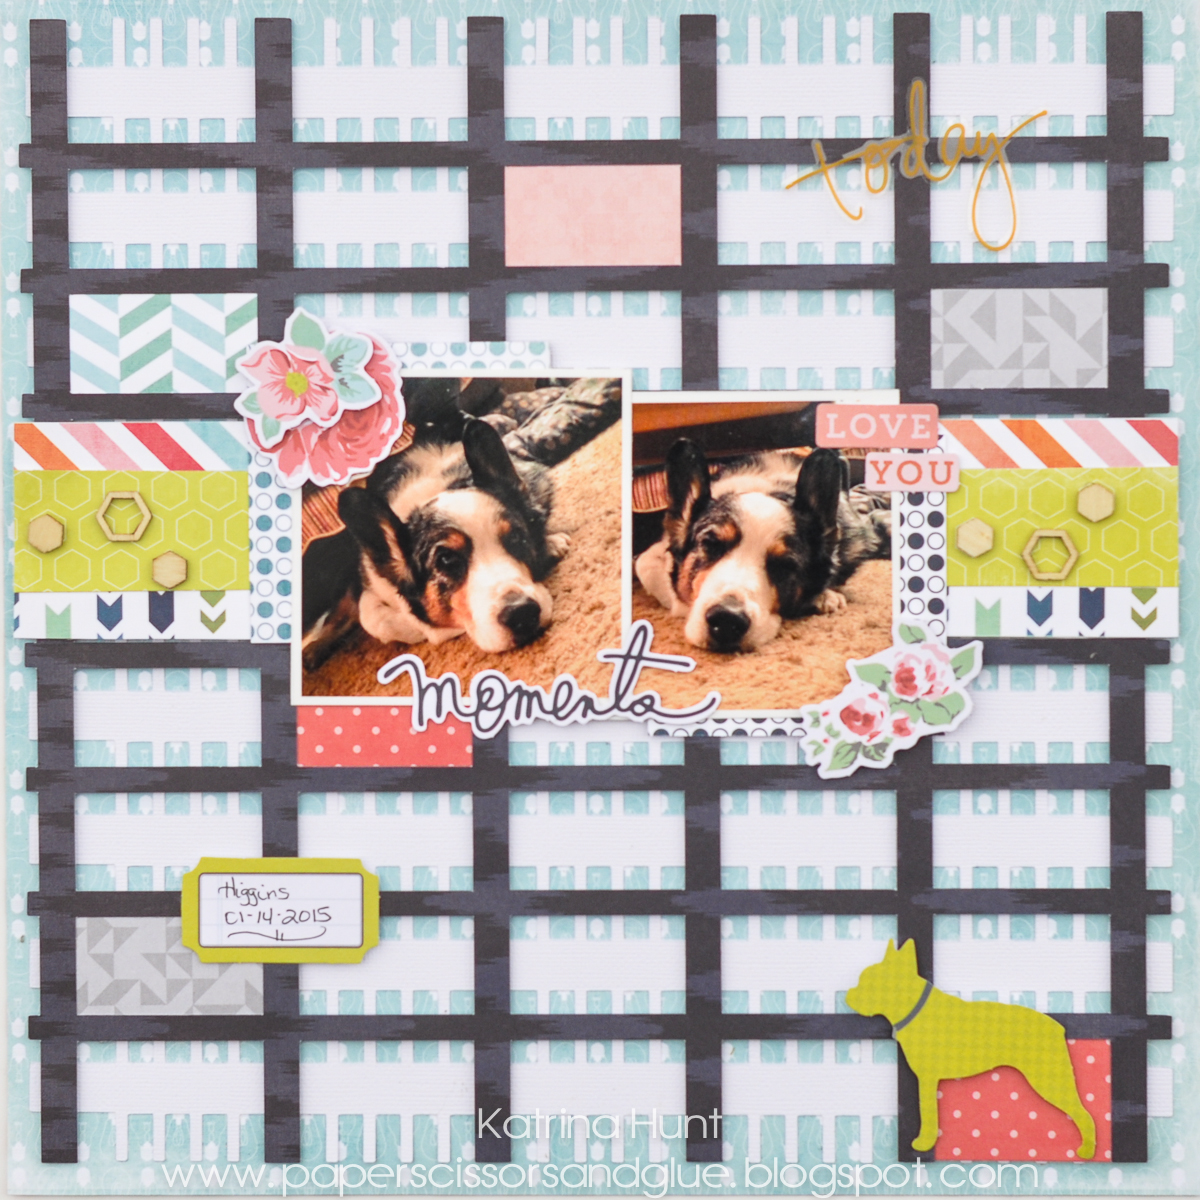 Moments_Scrapbook_Page_Mad_For_Plaid_Change_Plaid_Tutorial_Heidi_Swapp_Katrina_Hunt_17turtles_Digital_Cut_Files_-1